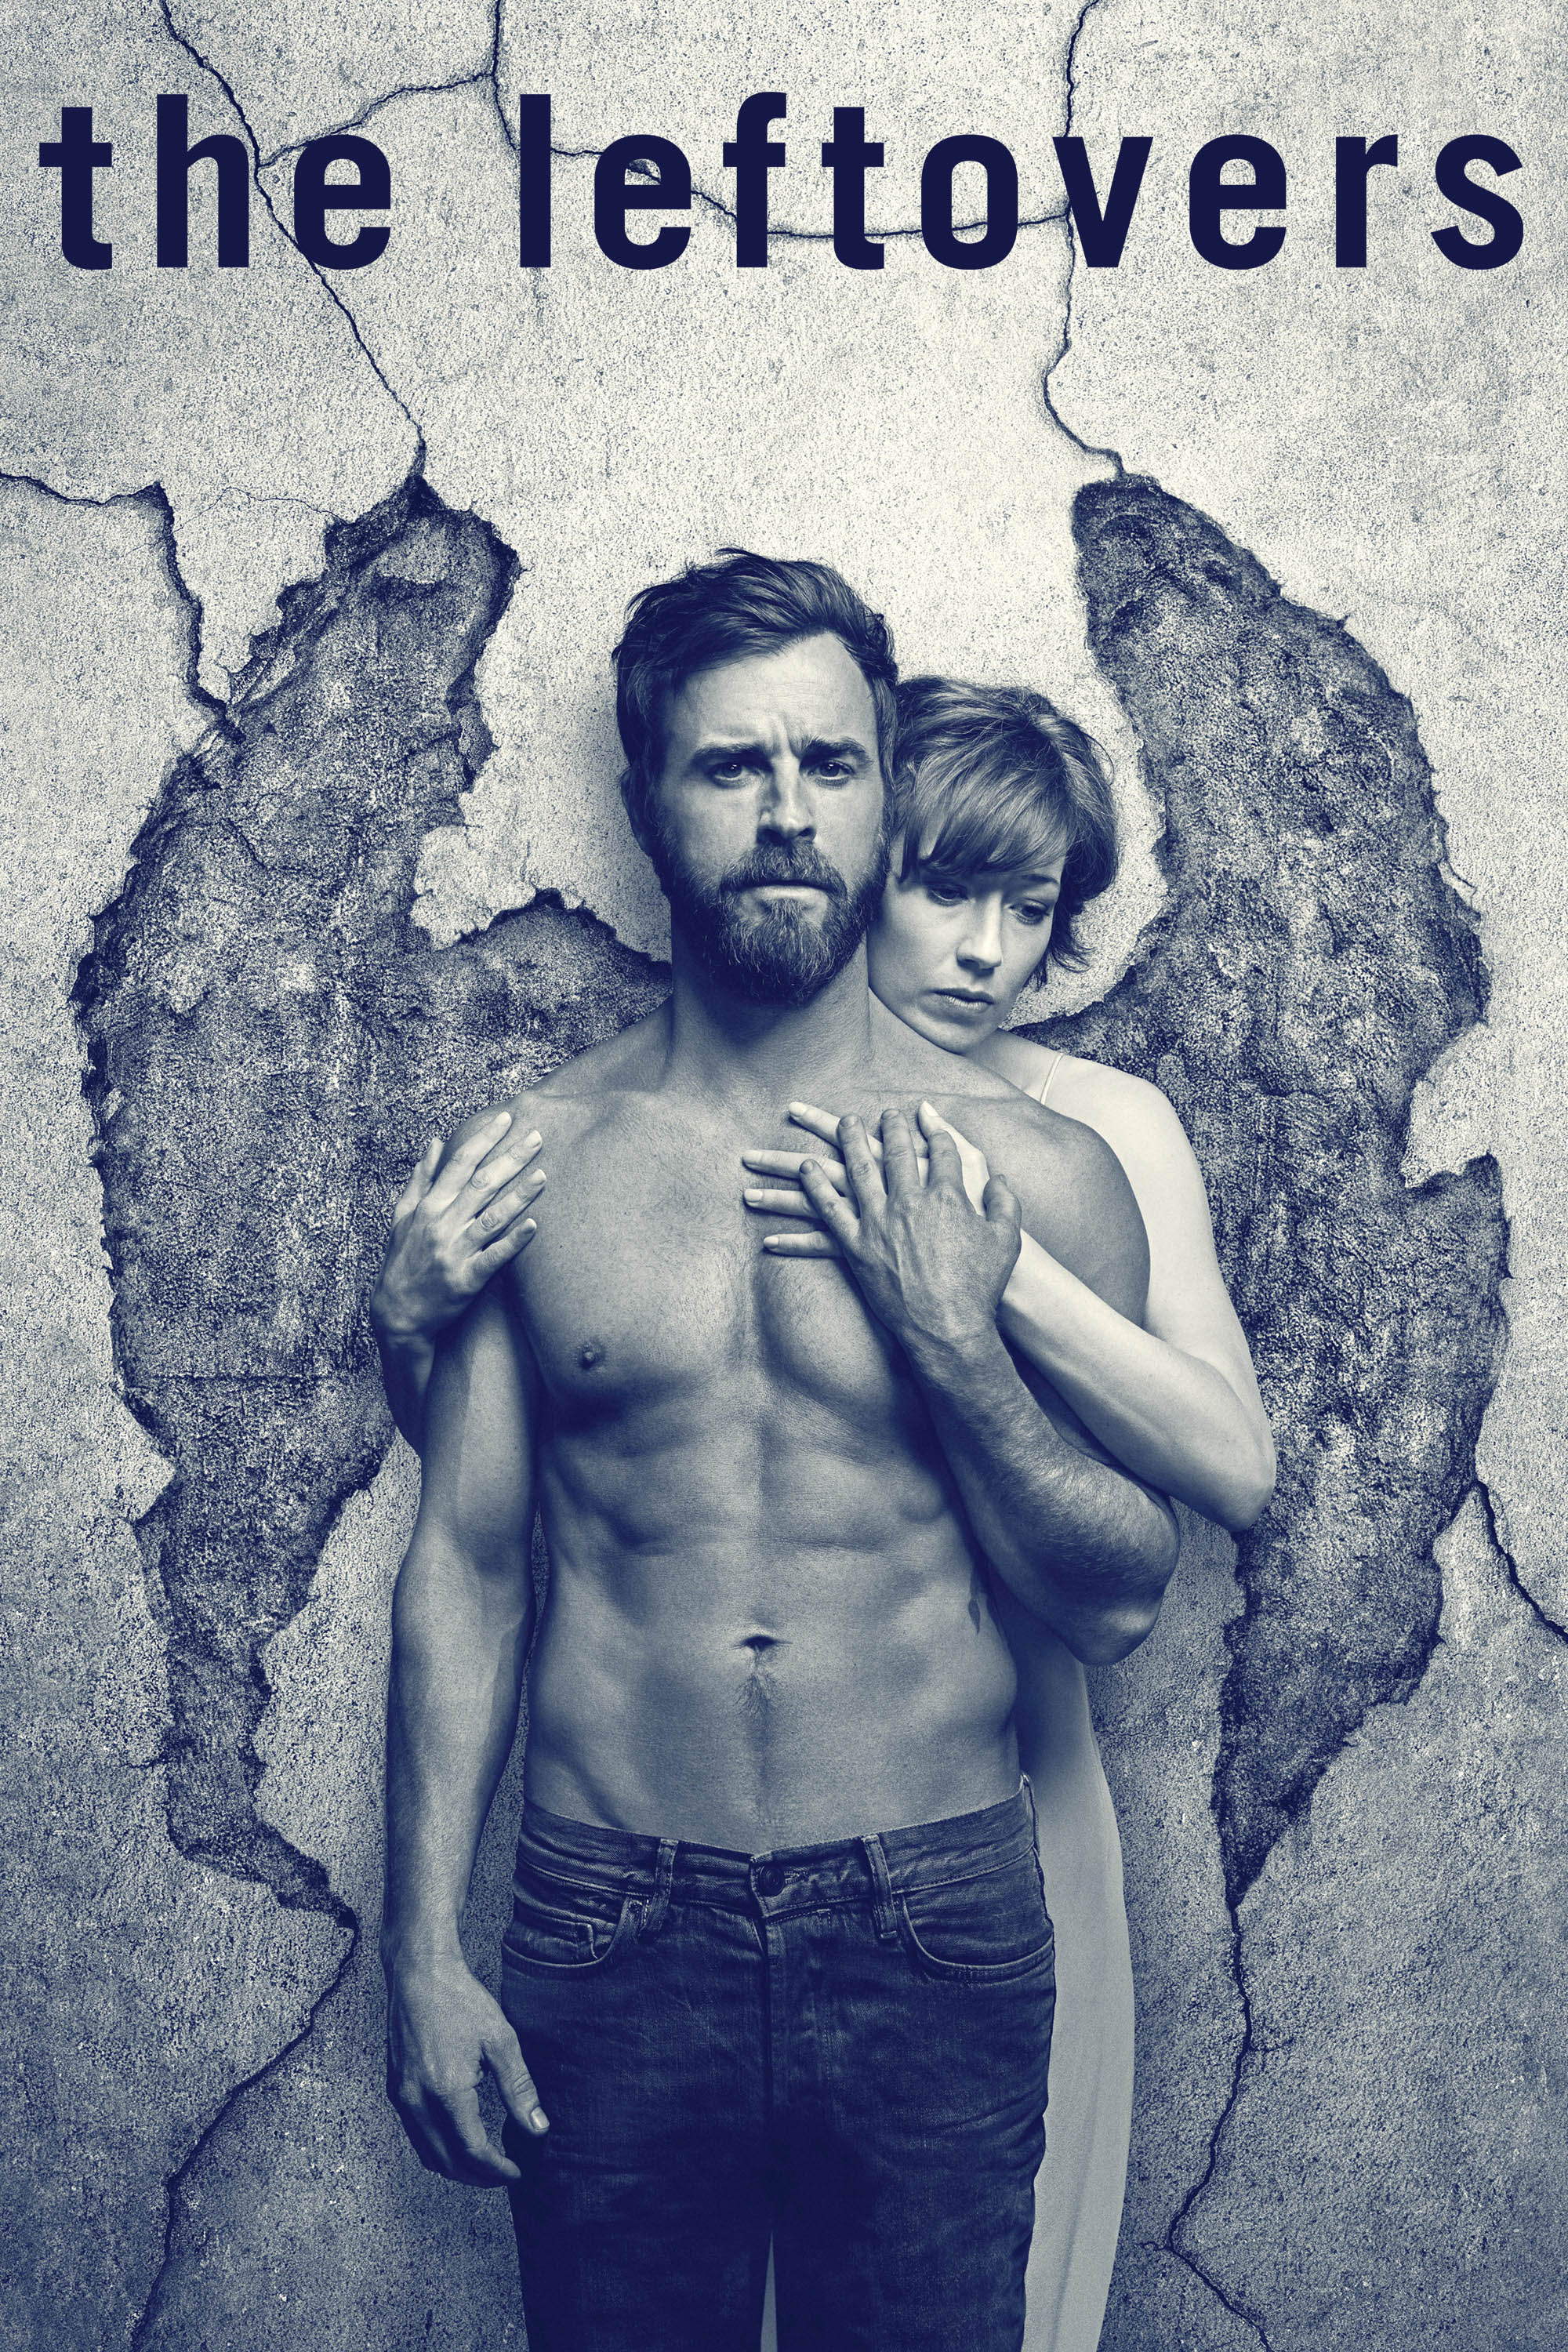 The Leftovers | Buy, Rent or Watch on FandangoNOW